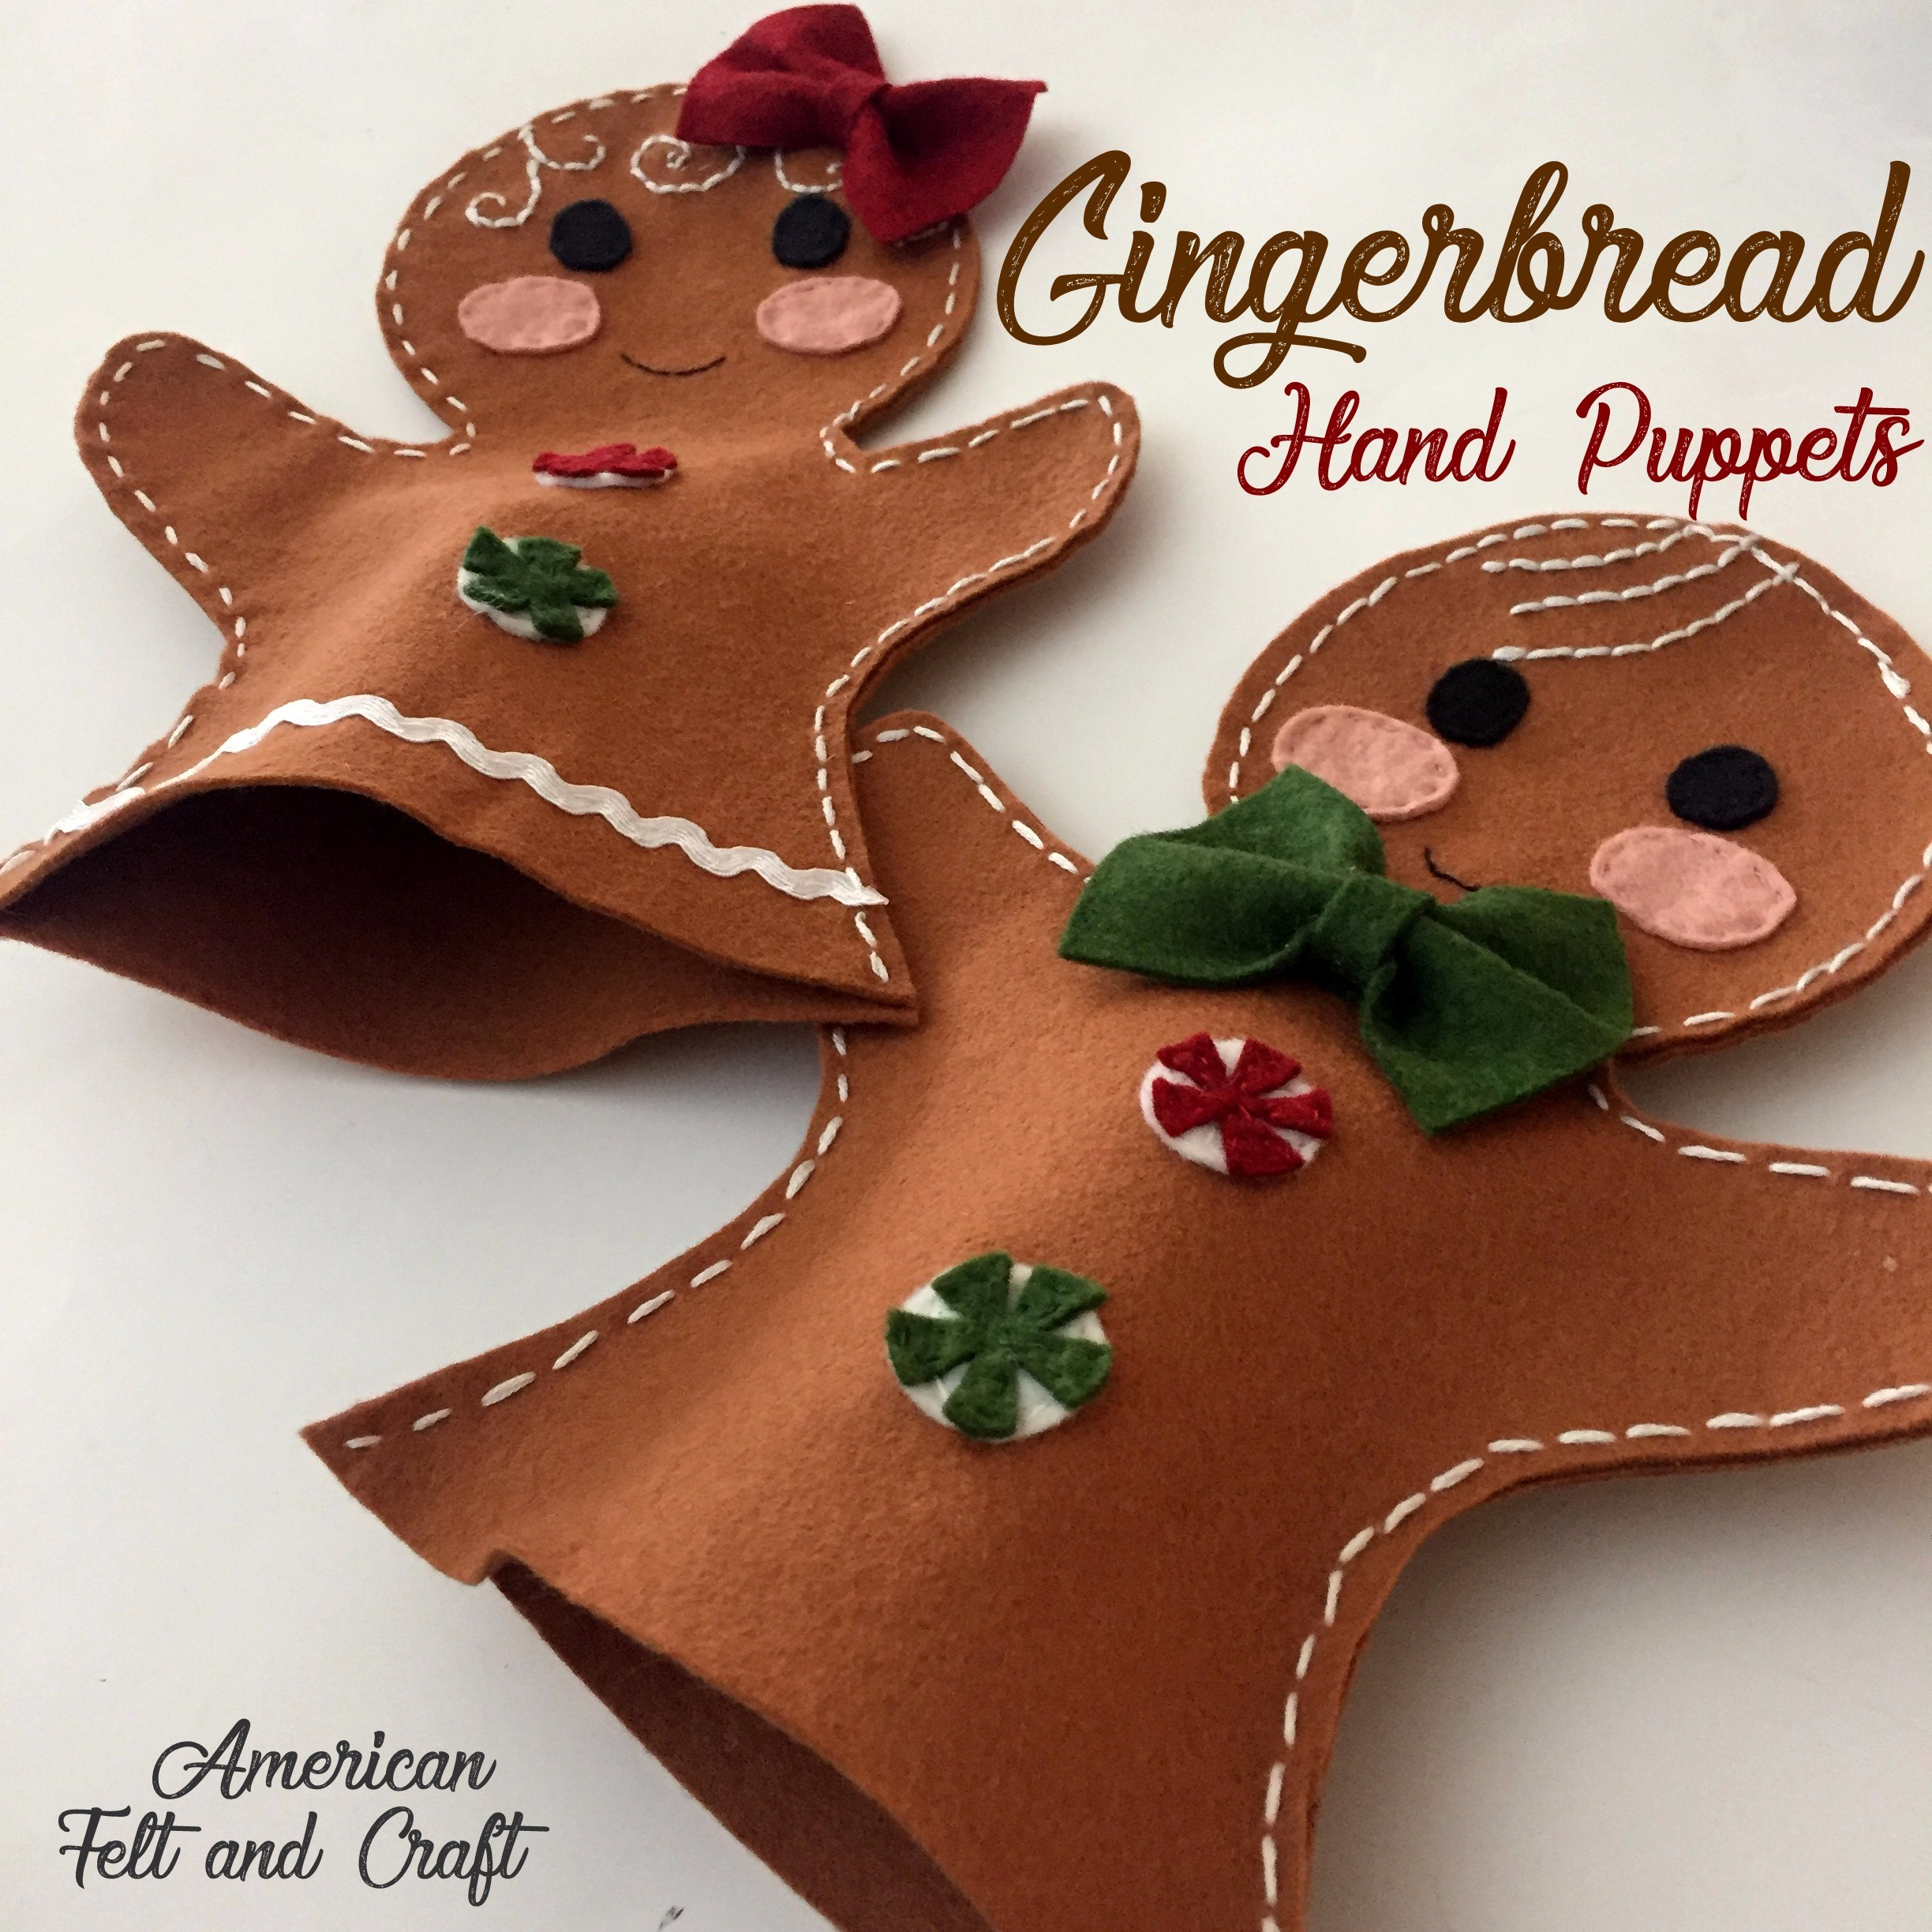 gingerbread hand puppets